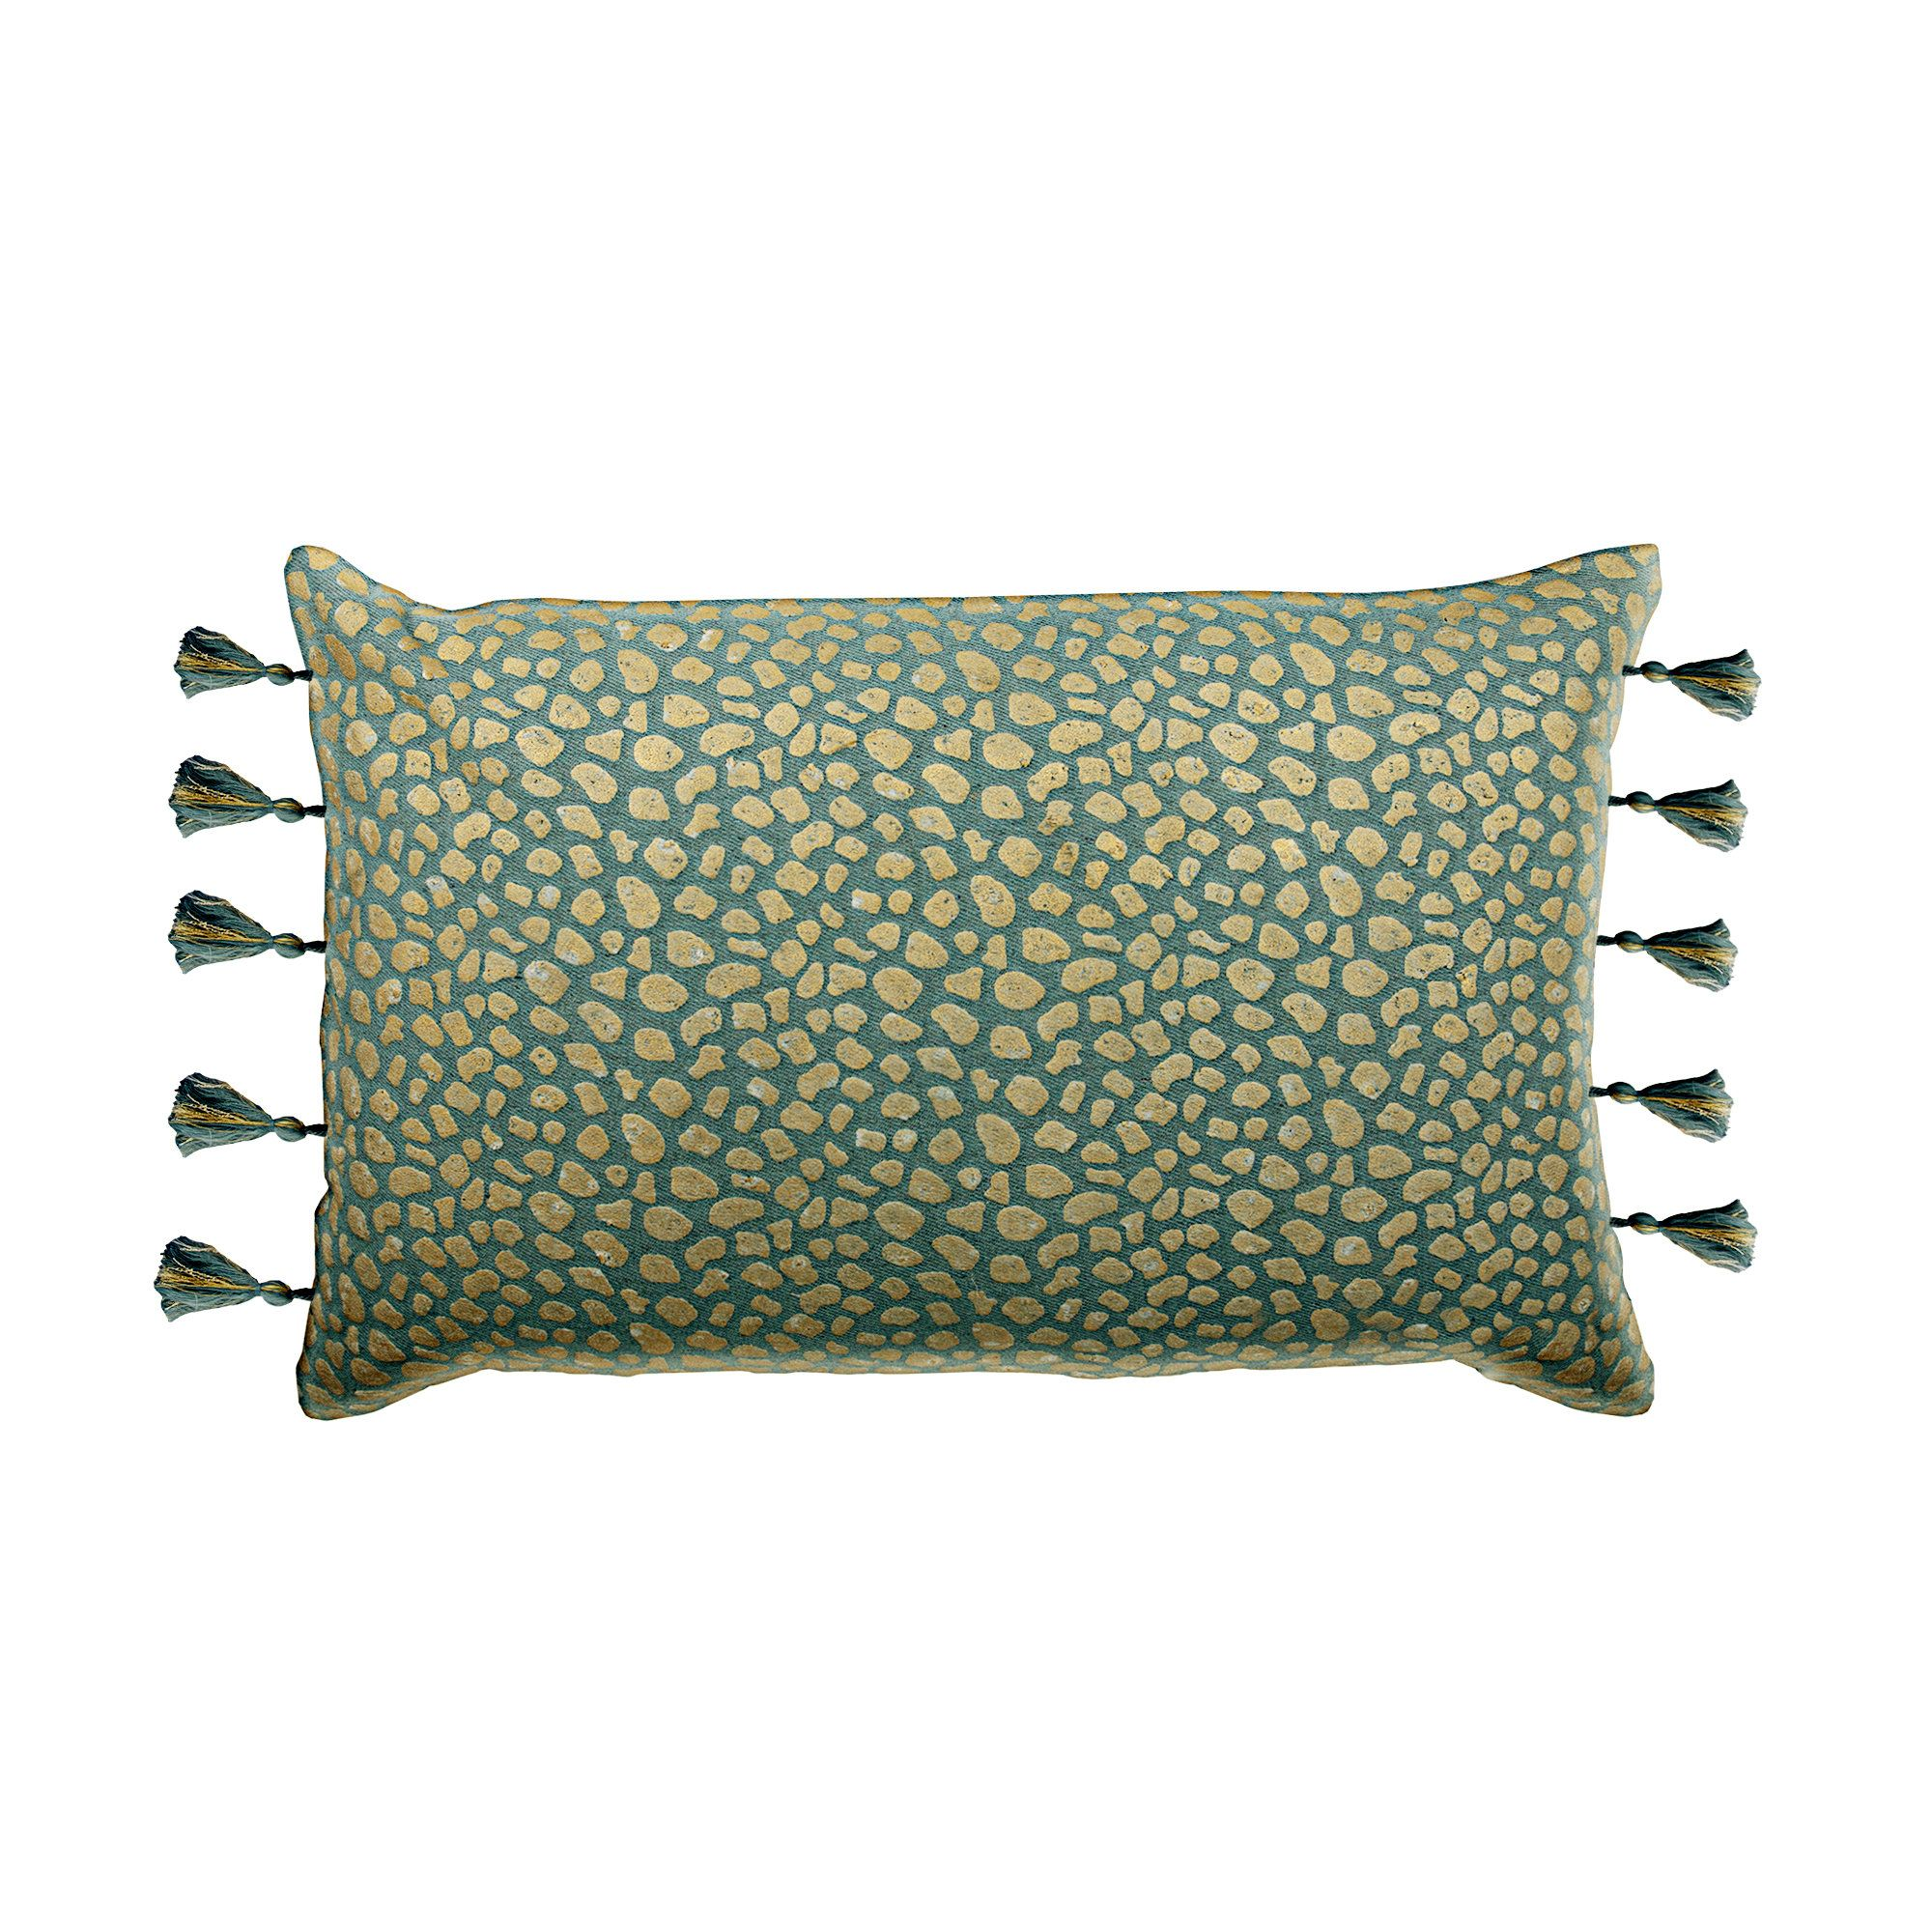 Decorative Oblong Lumbar Throw Pillow Cover Accent Pillows Etsy In 2020 Lumbar Throw Pillow Sofa Pillow Cases Couch Accent Pillows